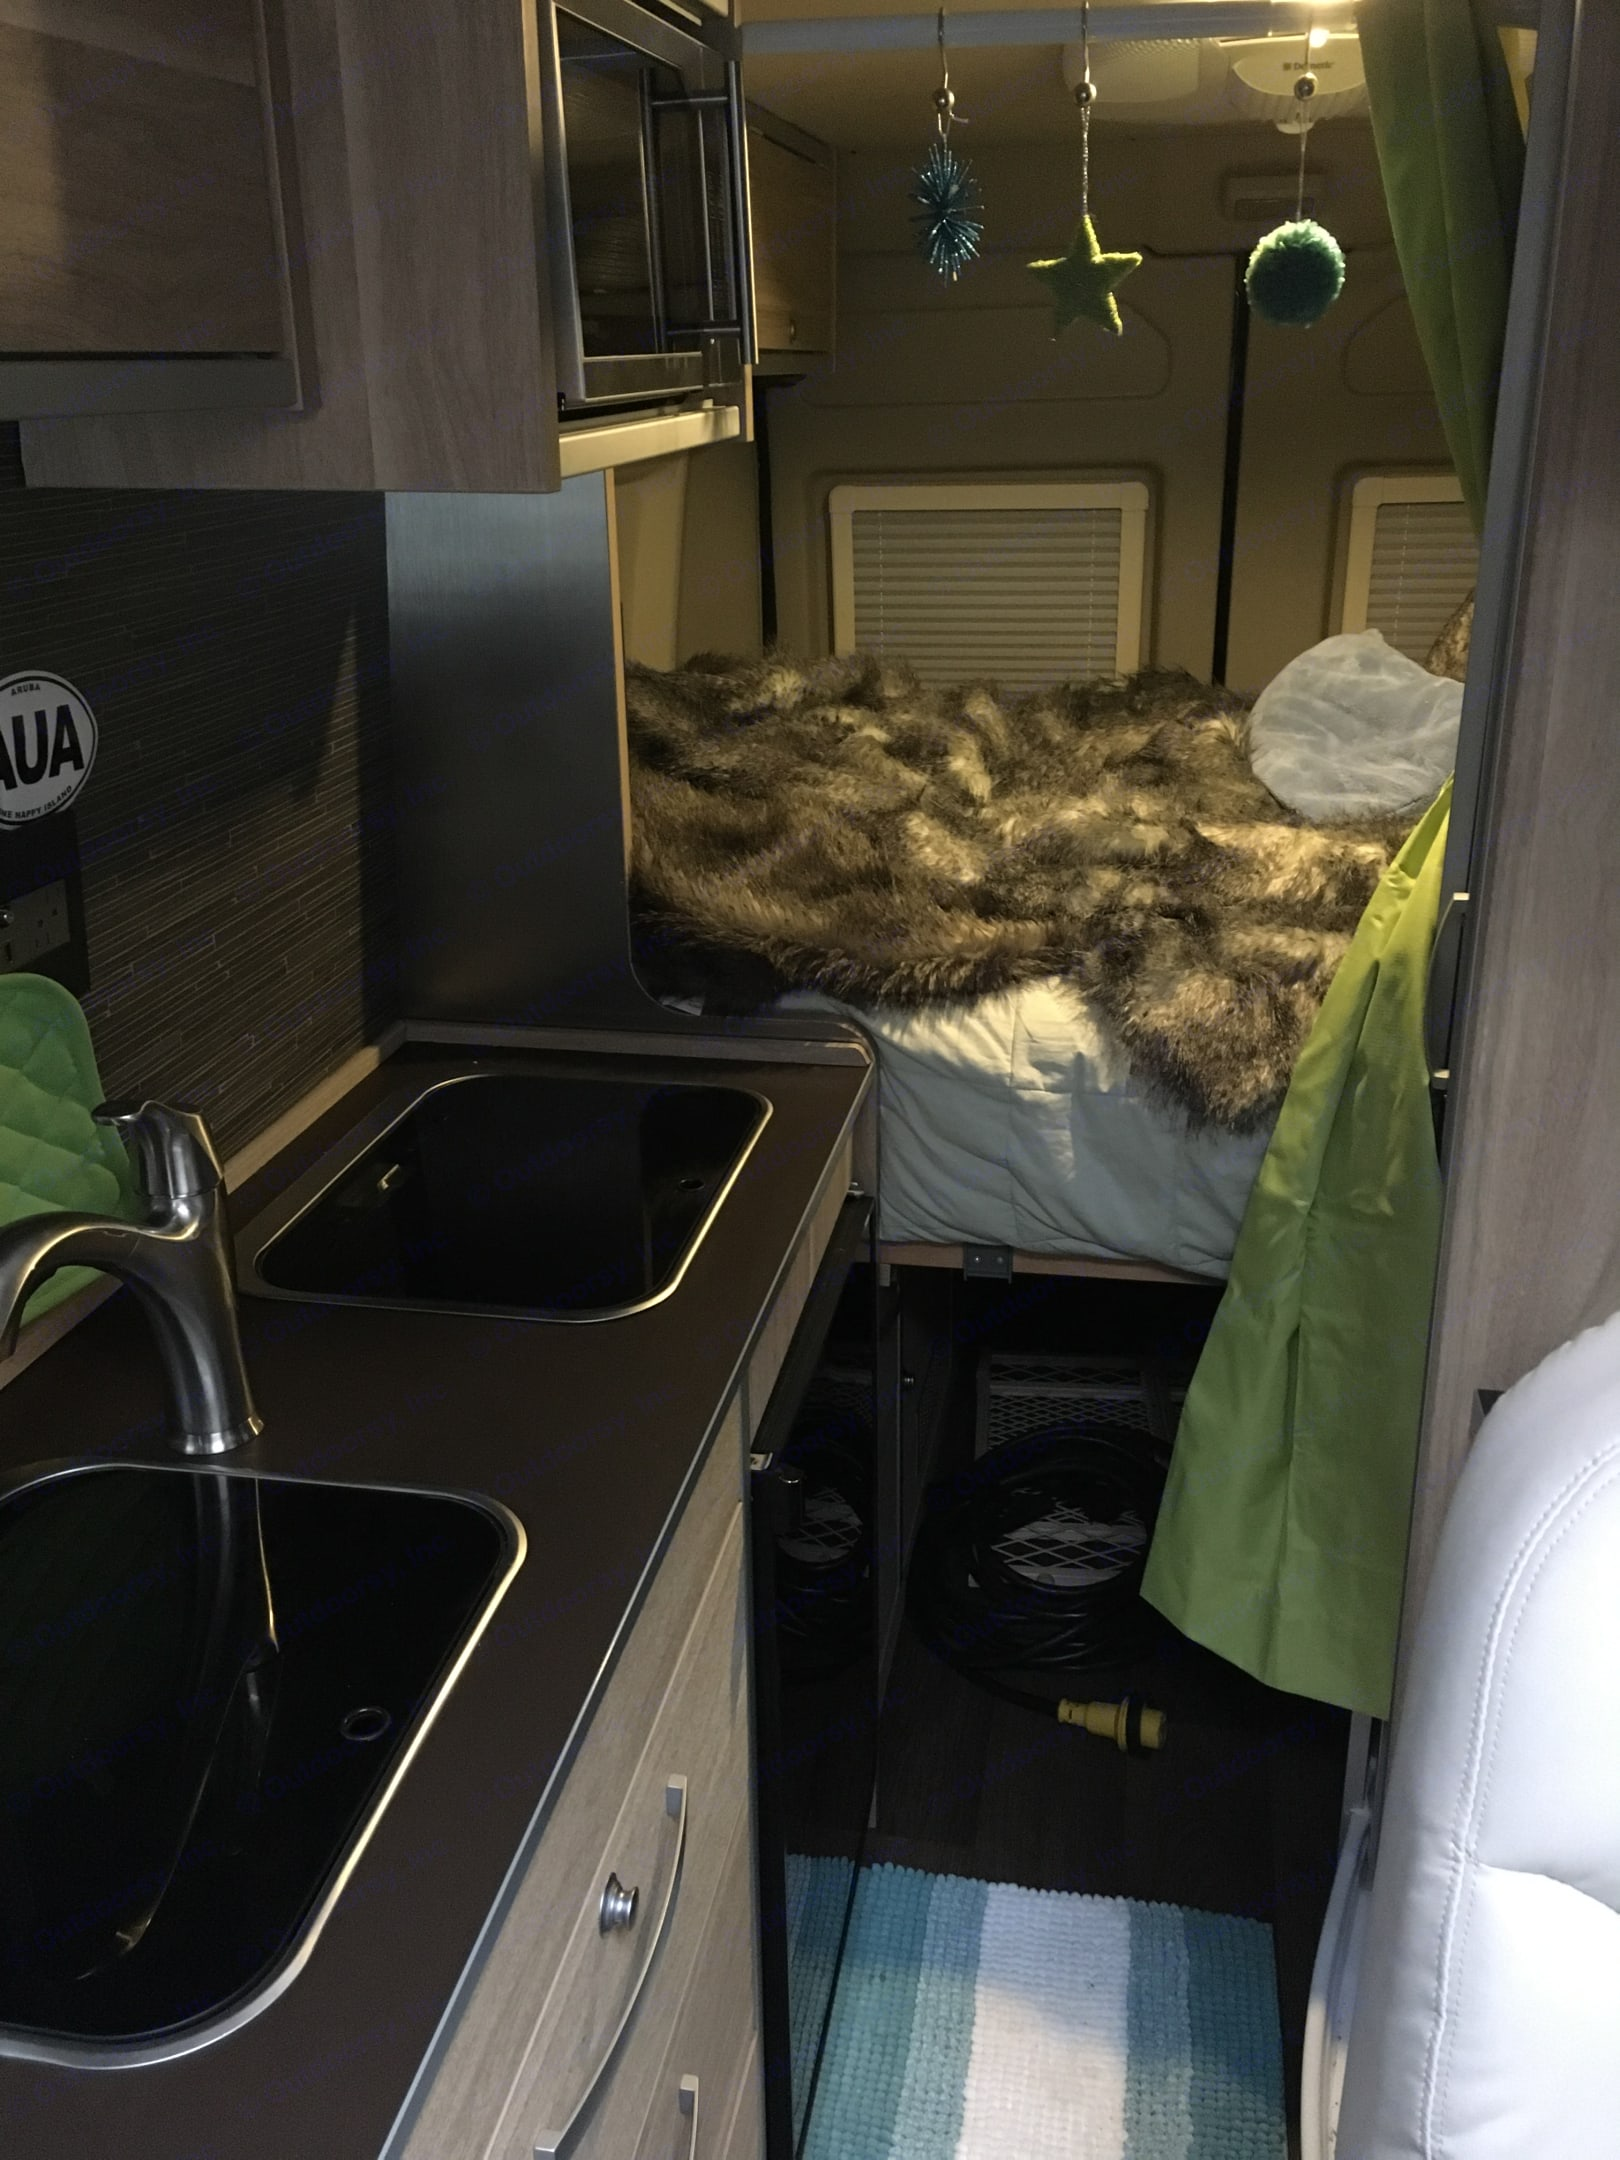 Fully equipped kitchen with 2 burner propane stove, refrigerator with small freezer, microwave and sink. Murphy bed can be raised. Hymer Other 2017